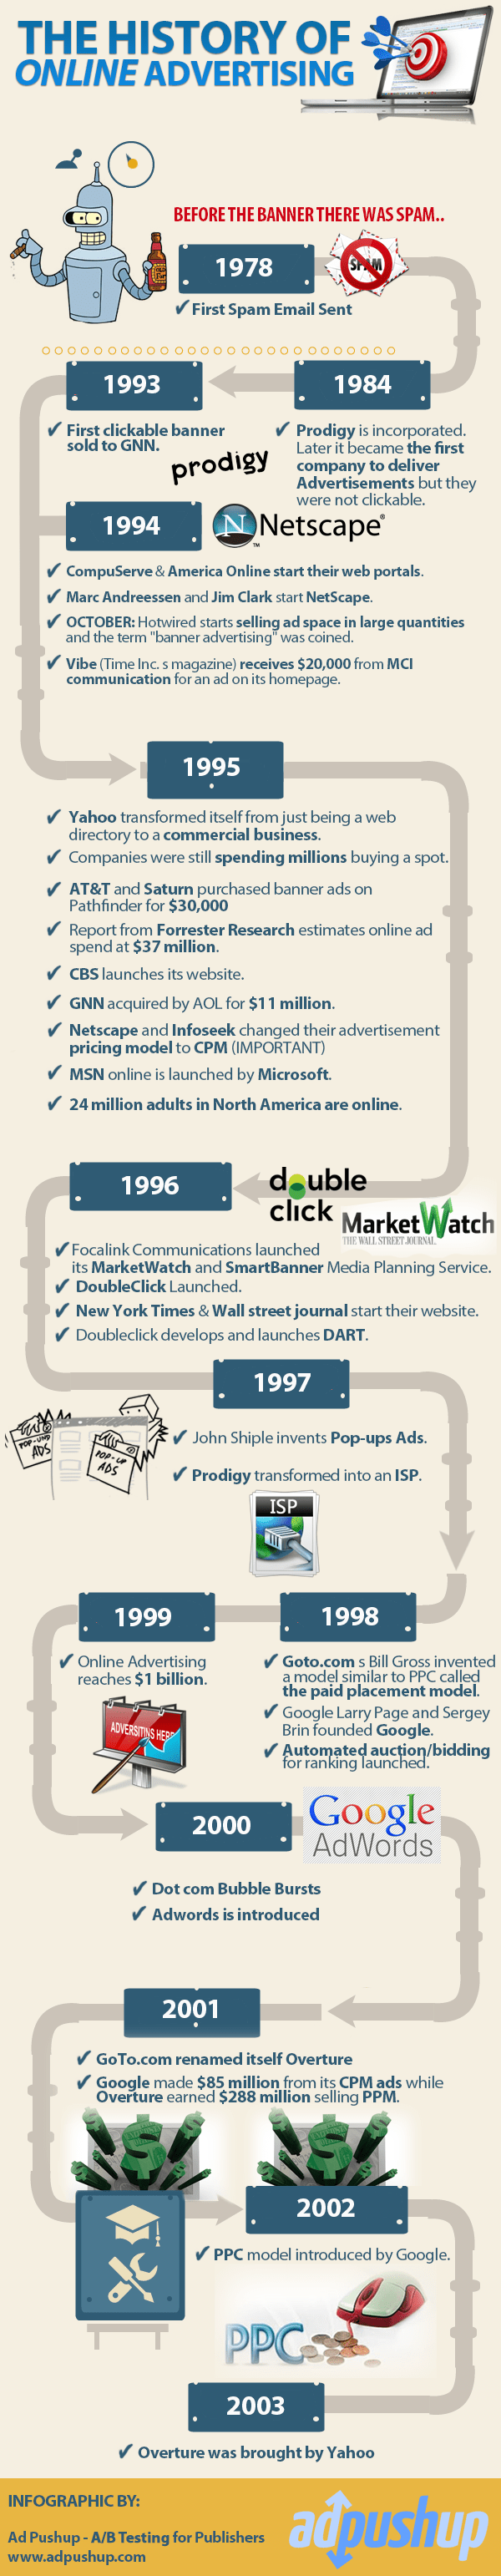 History of Online Advertising